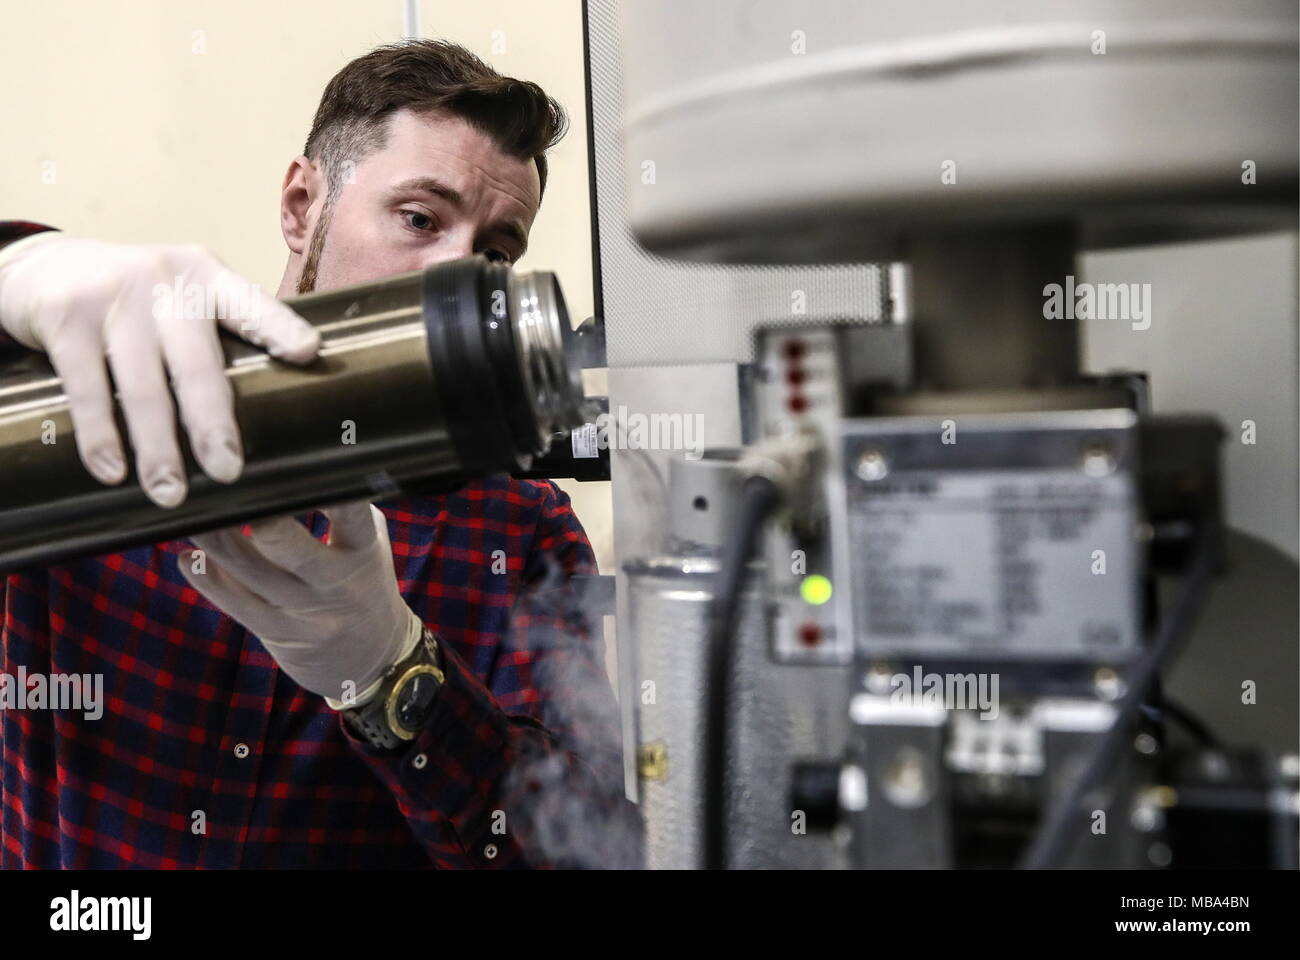 Moscow, Russia. 06th Apr, 2018. MOSCOW, RUSSIA - APRIL 6, 2018: An employee fills a Titan transmission electron microscope with liquid nitrogen at an electron microscopy laboratory of the Kurchatov Institute National Research Center. Valery Sharifulin/TASS Credit: ITAR-TASS News Agency/Alamy Live News - Stock Image